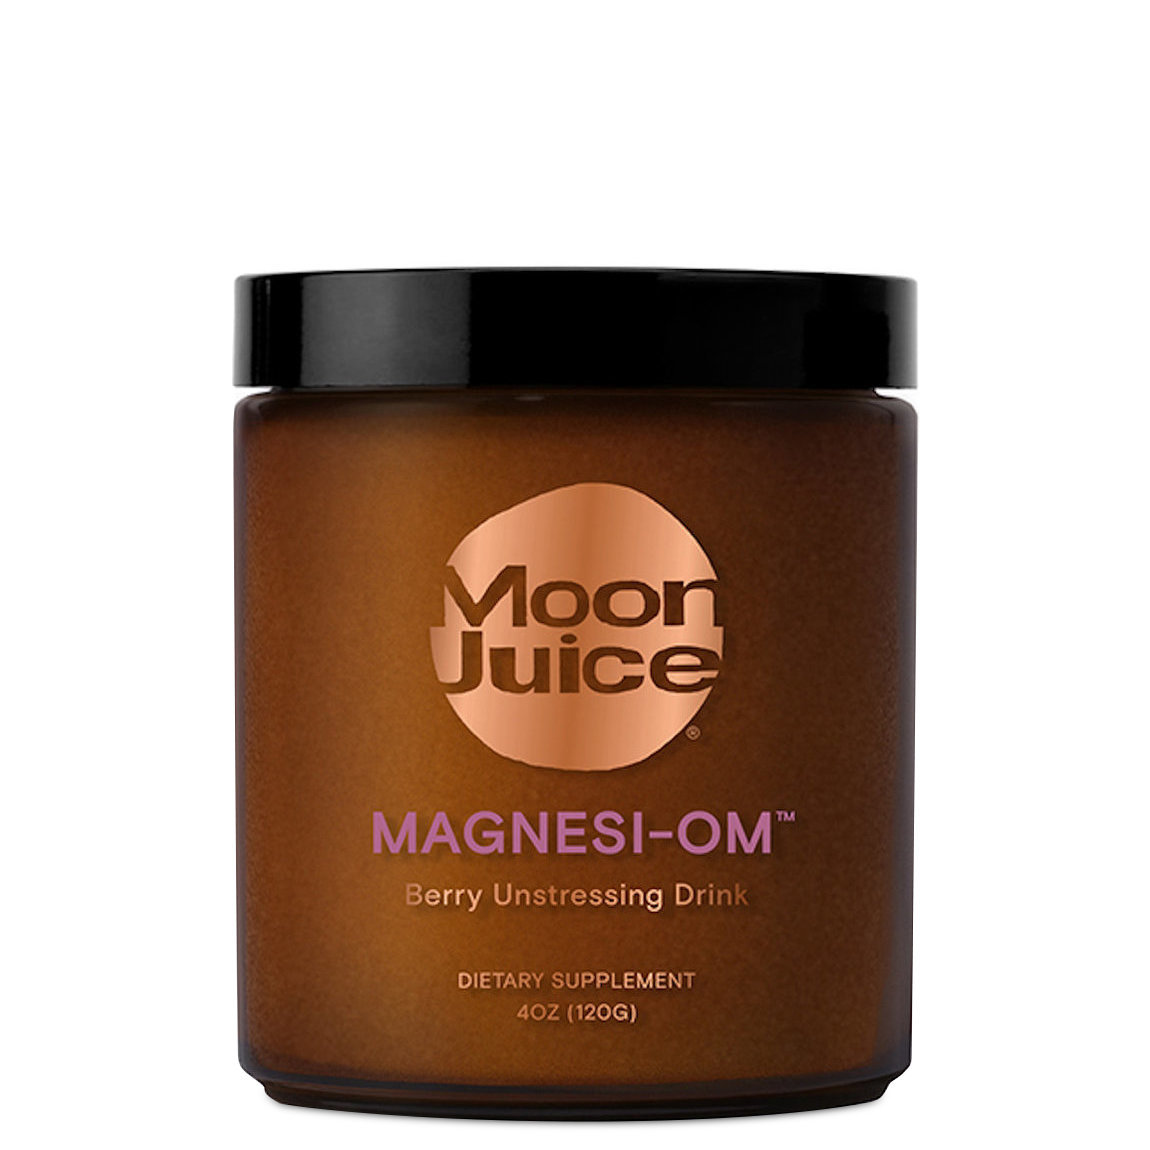 Moon Juice Magnesi-Om product swatch.